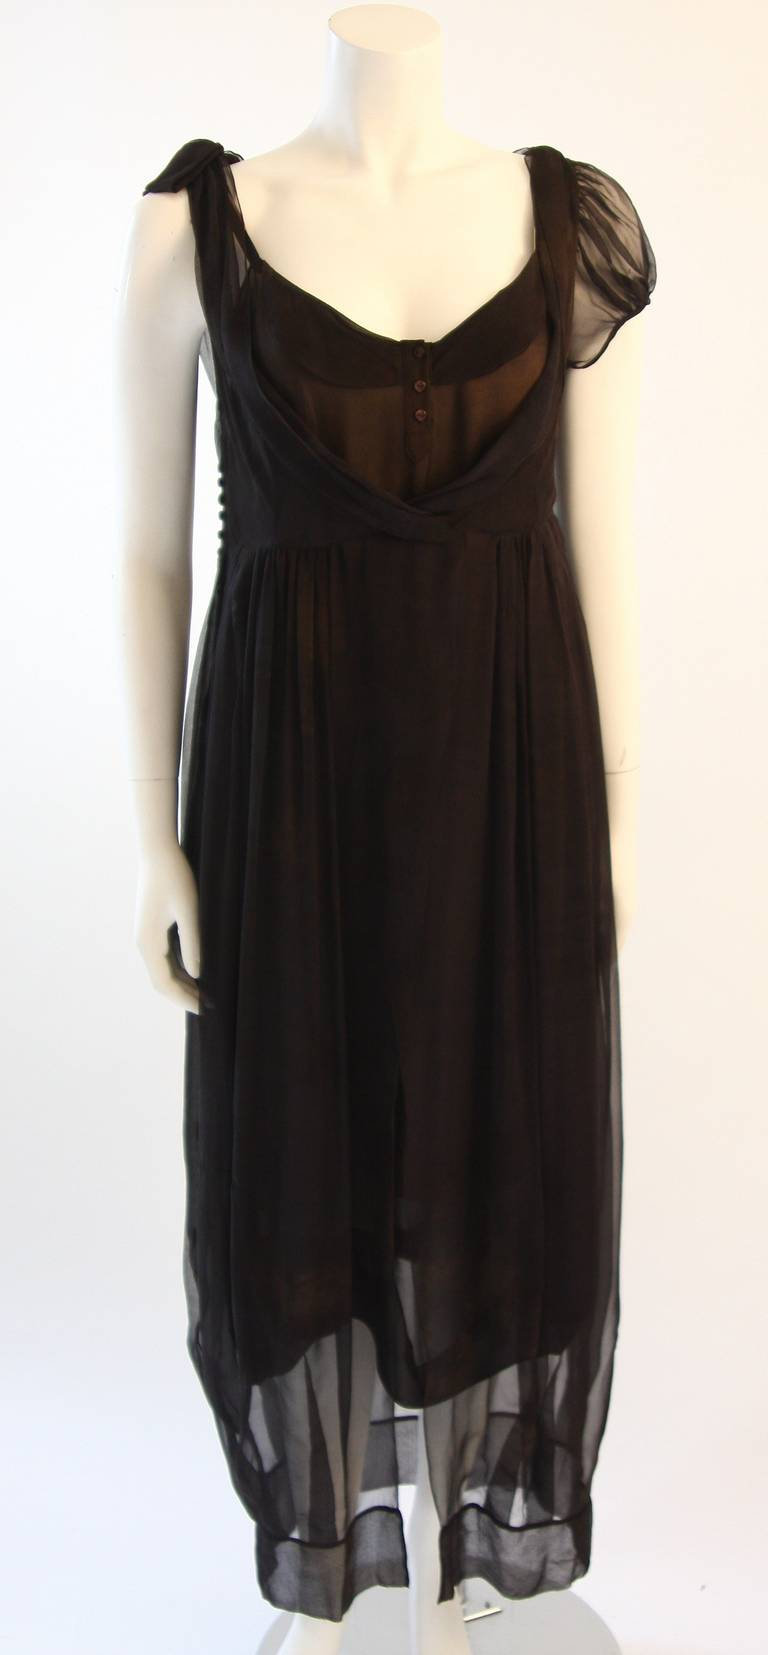 This is a chic Zac Posen ensemble. This two piece set can be worn together or styled individually as a dress and, or top. It has a raw and Steam Punk inspired design. The thin silk chiffon has an off black hue with a faded and discolored effect (Off